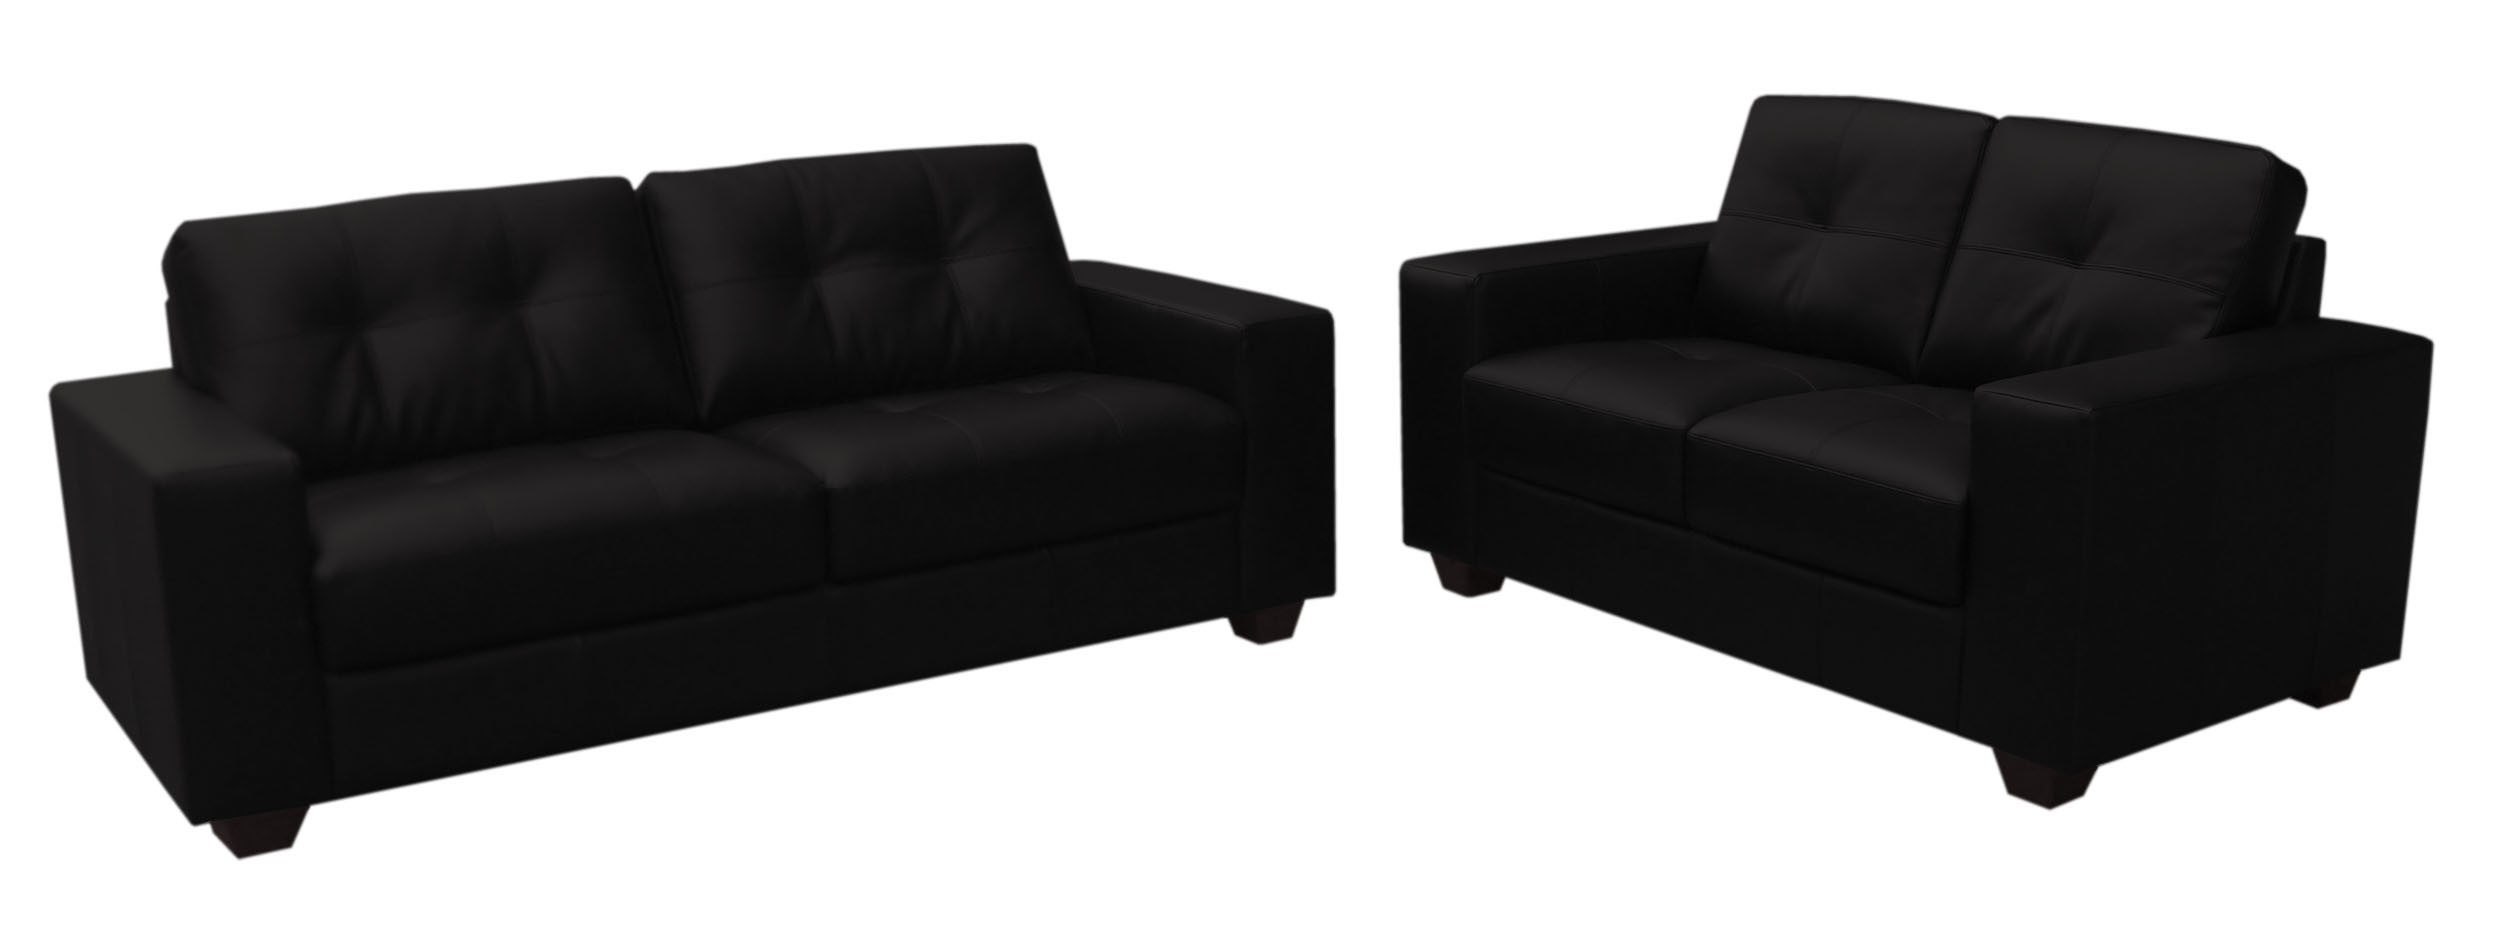 Well Known Black 2 Seater Sofas Intended For Faux Black Leather Sofa Two Piece Suite 3+2 Seater – Furniture (View 3 of 20)